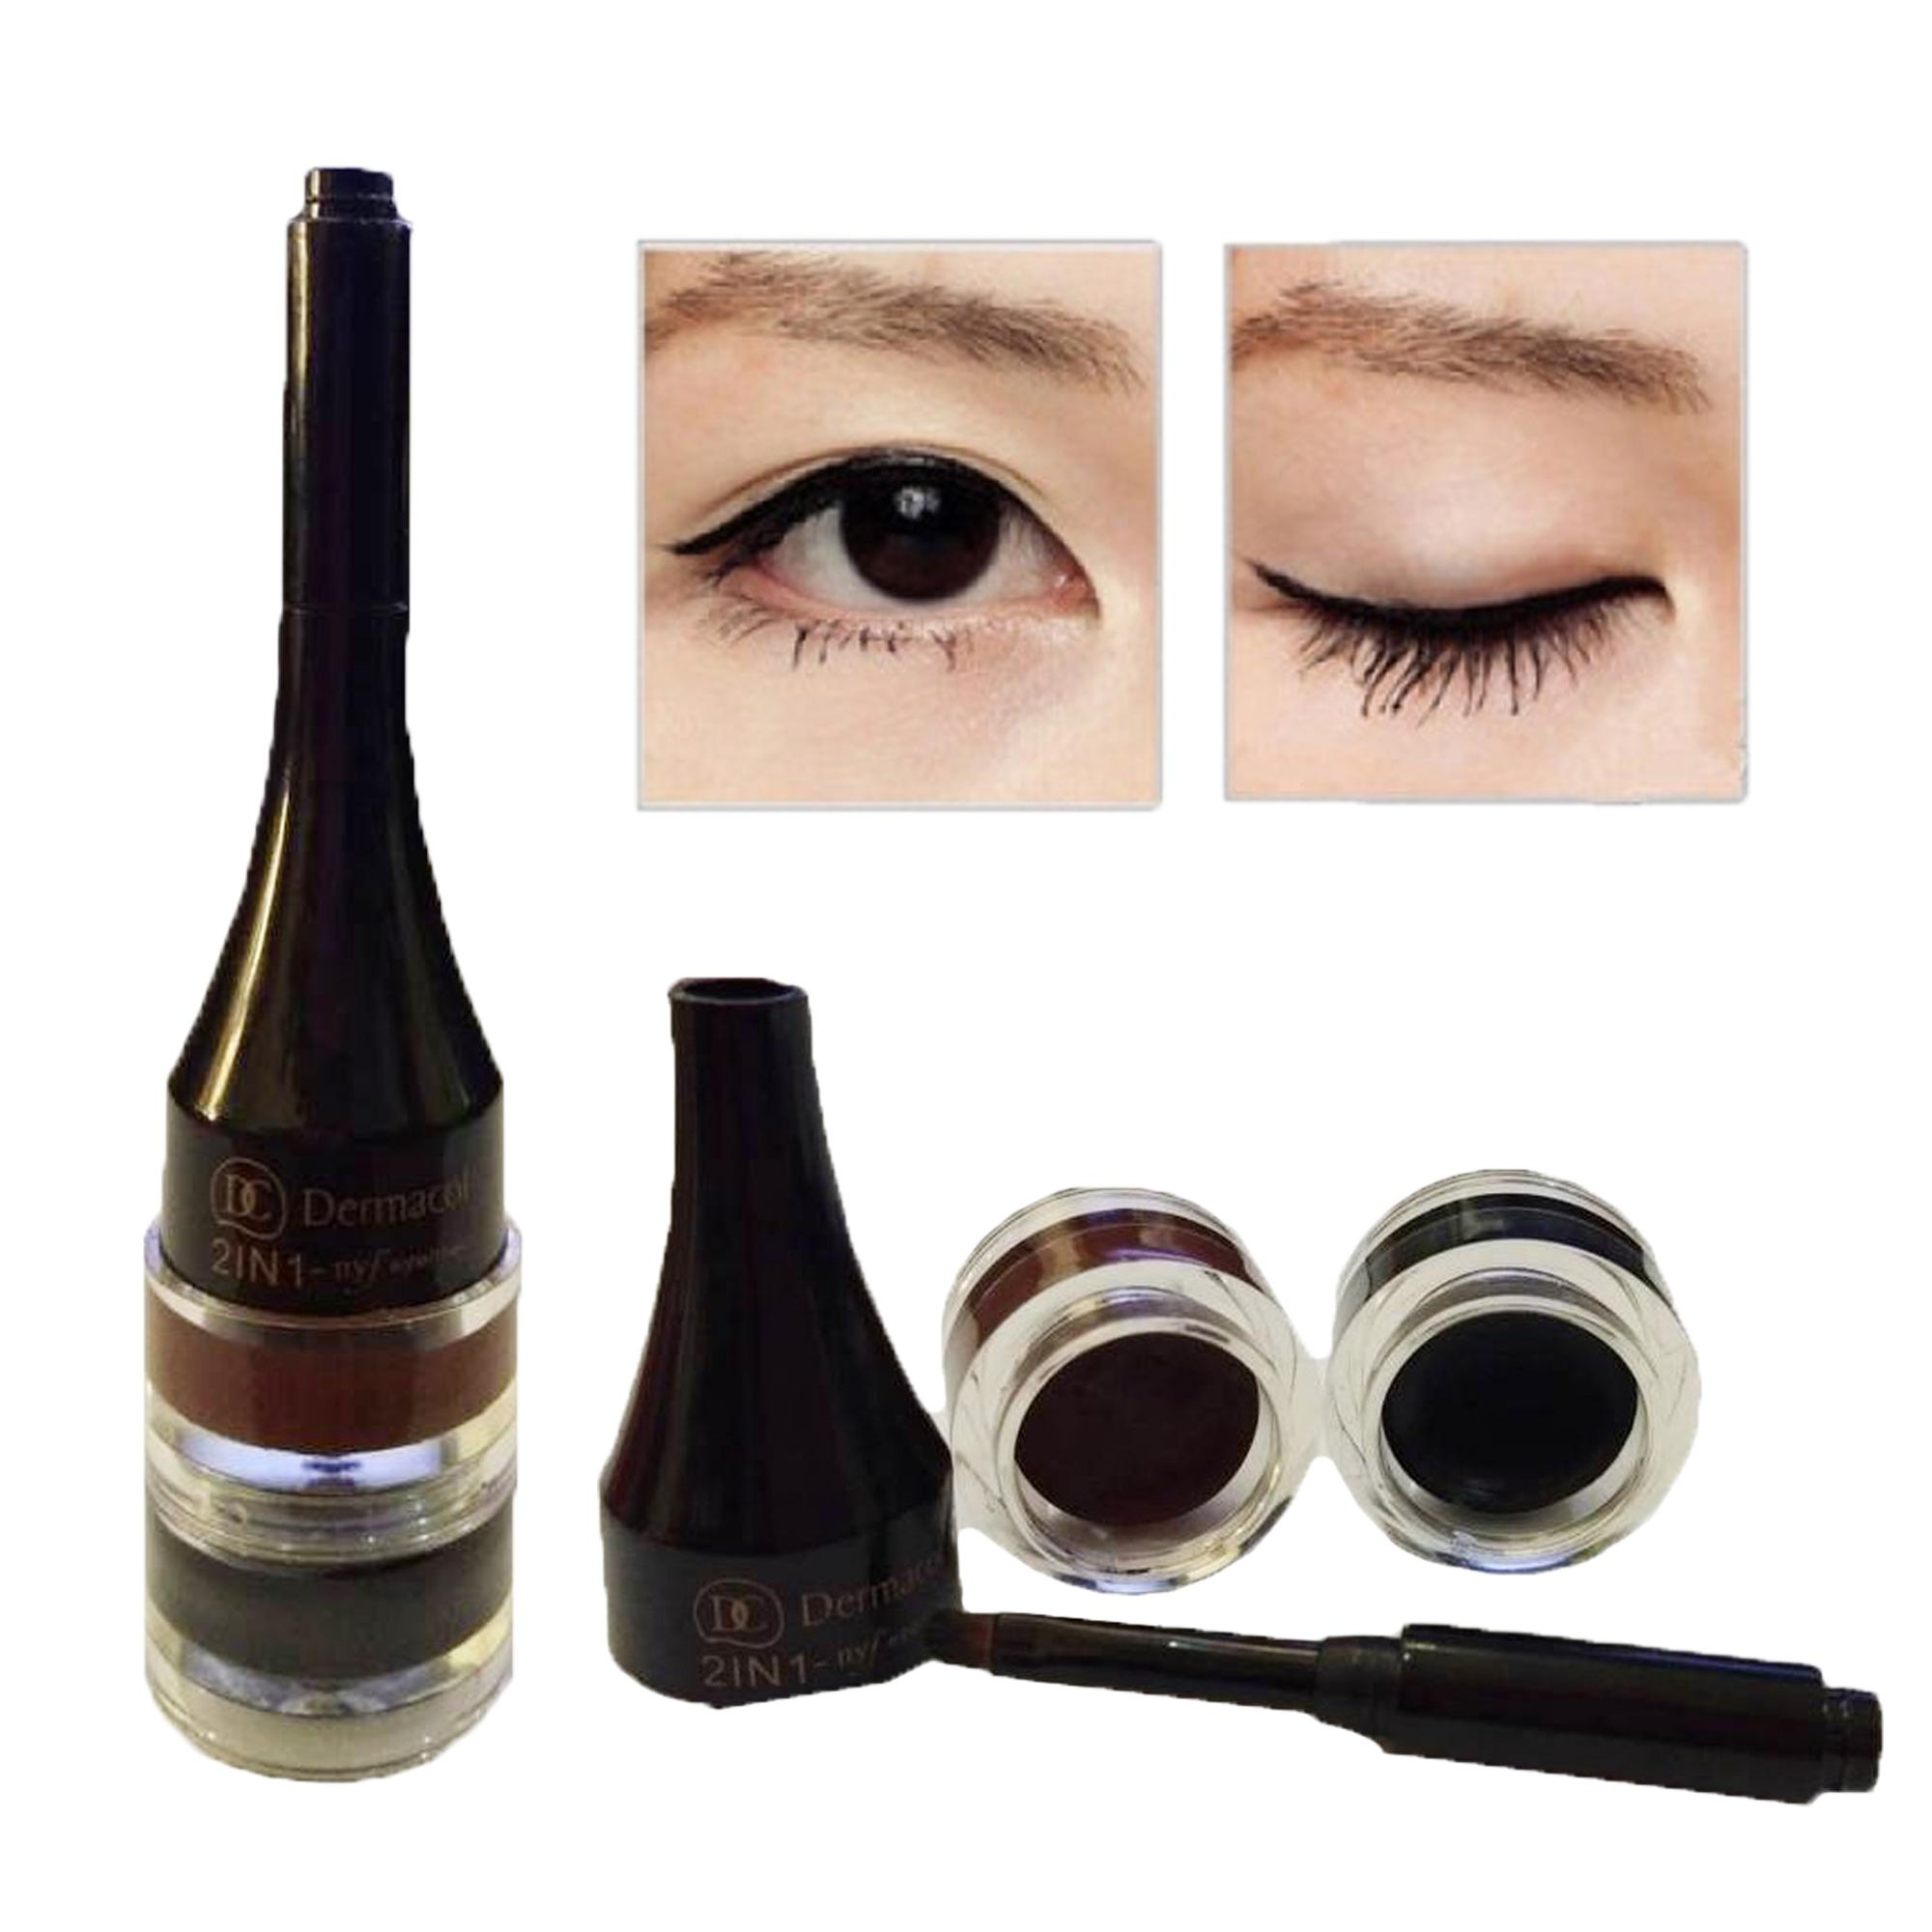 Dermacol 2 in 1 Lasting Drama Gel Eyeliner Philippines